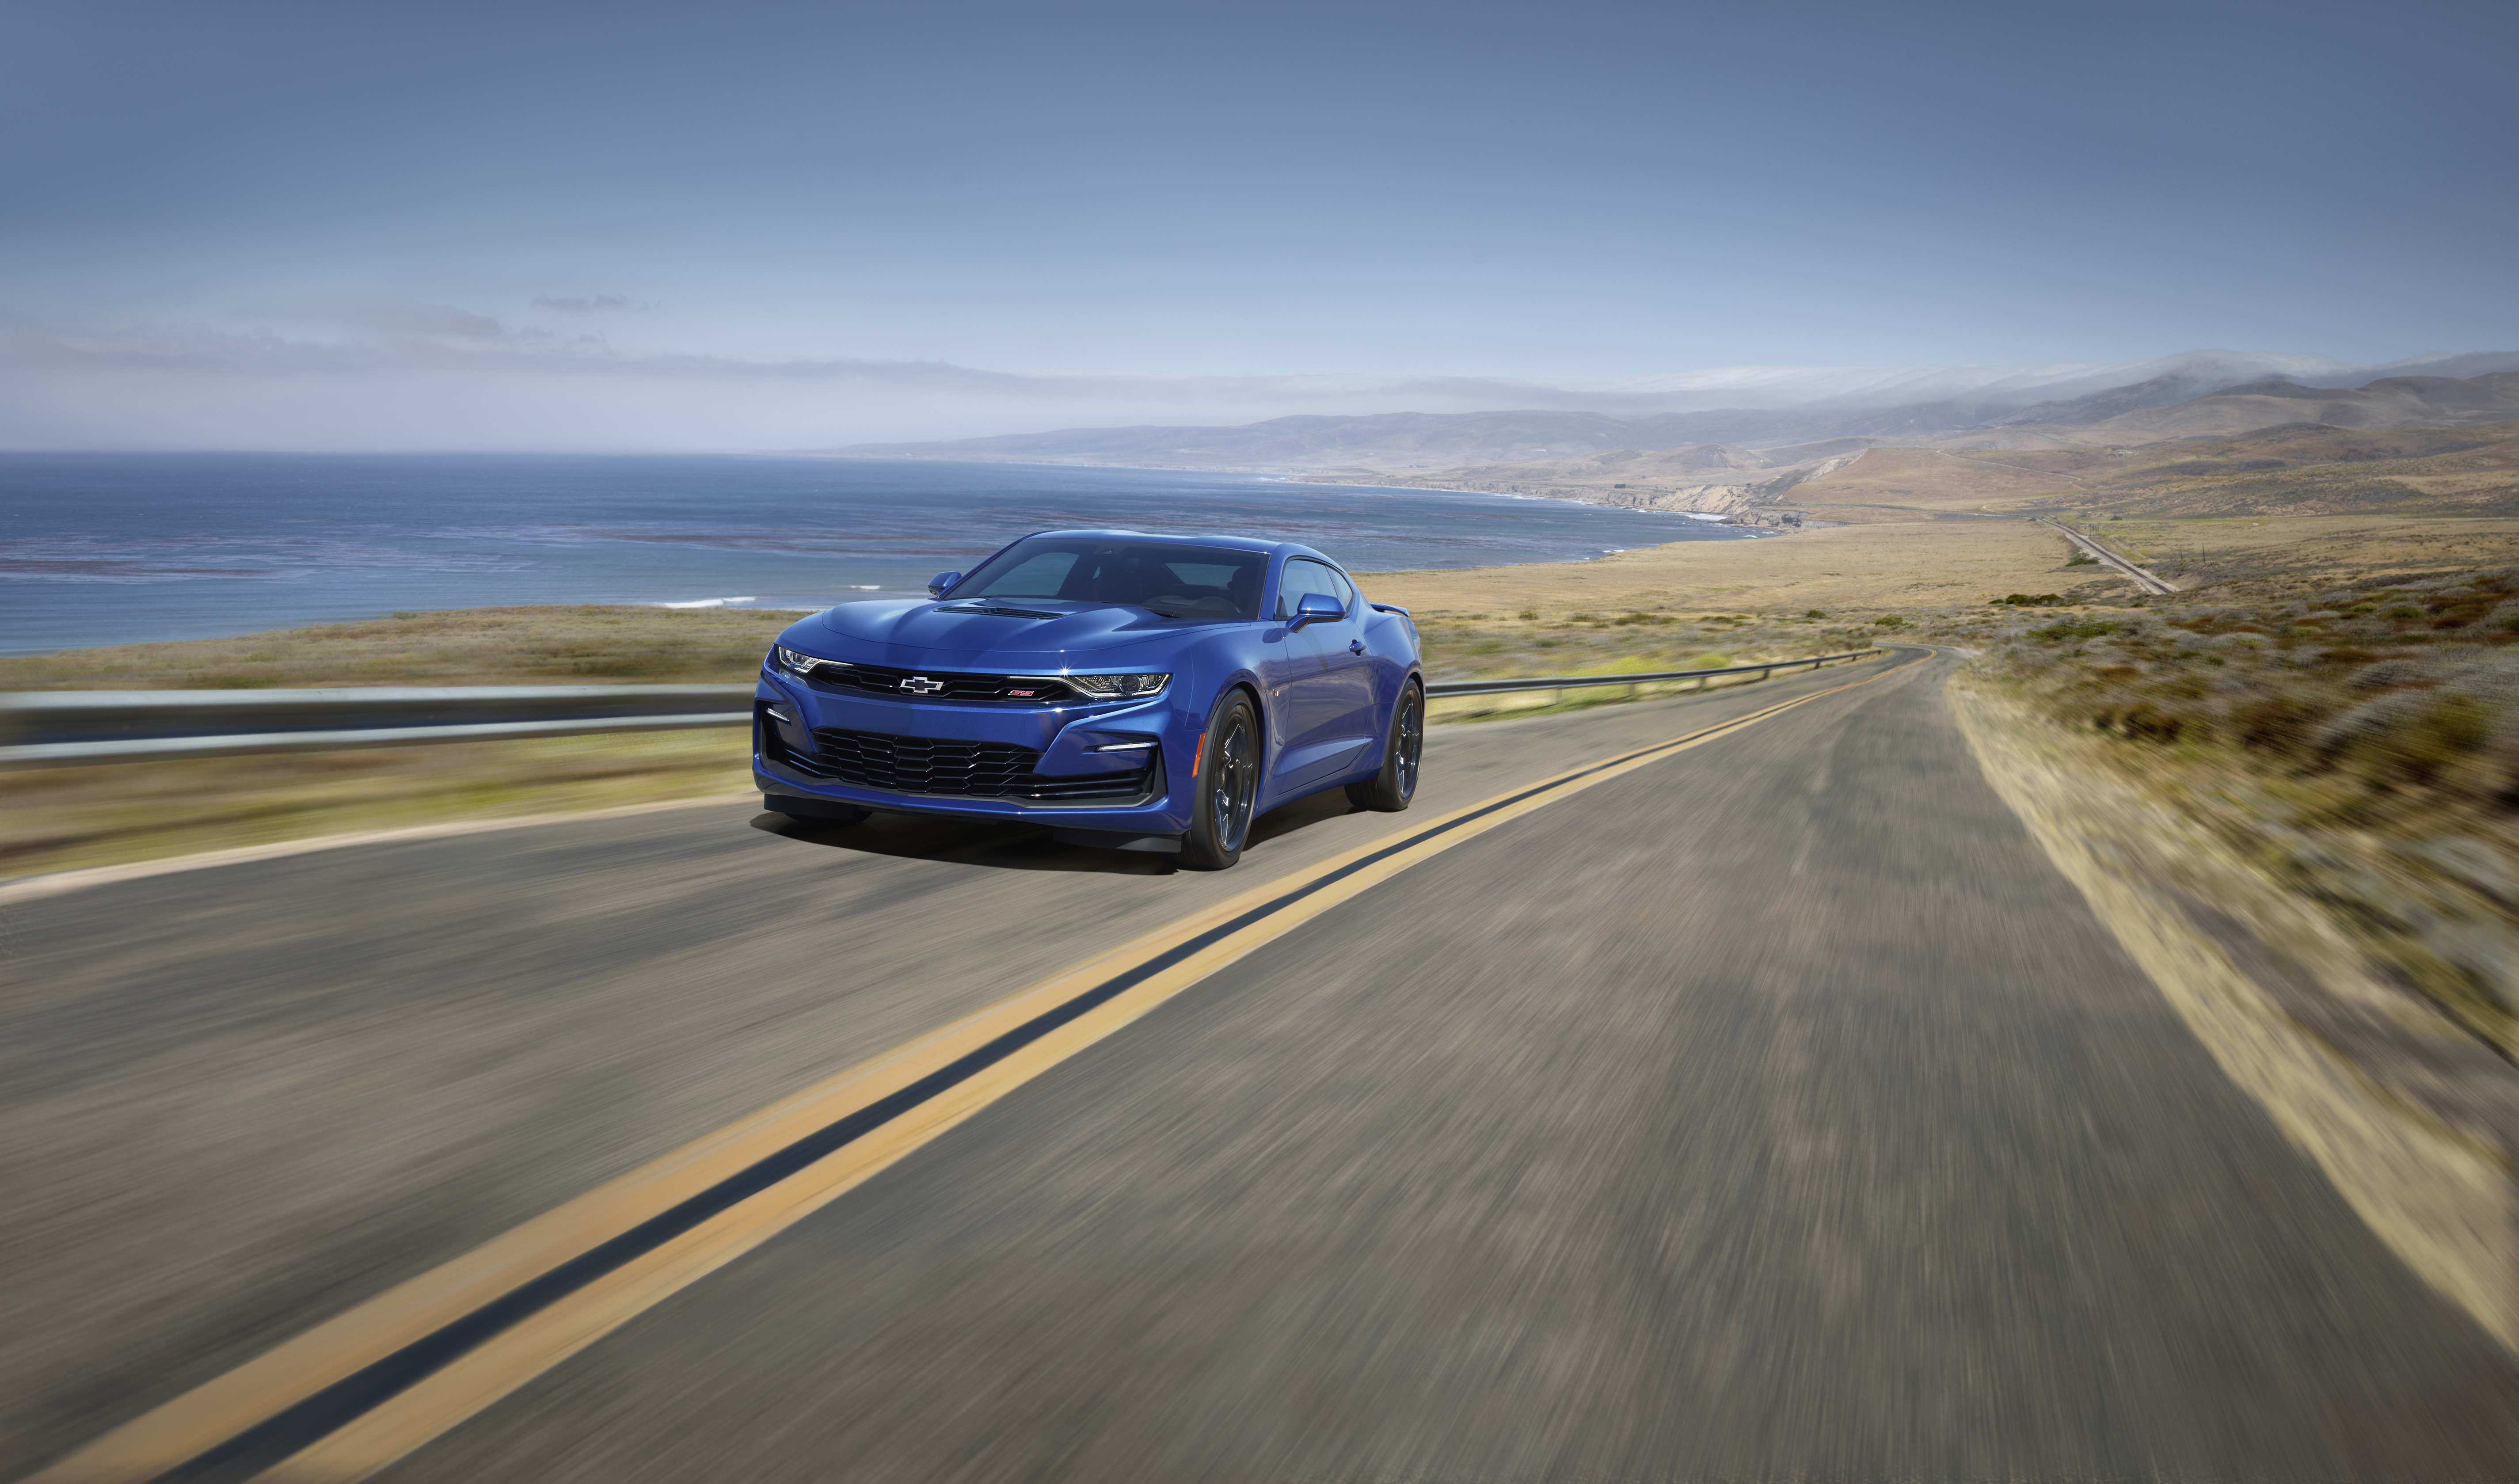 34 The Best 2020 The Camaro Ss Price Design And Review